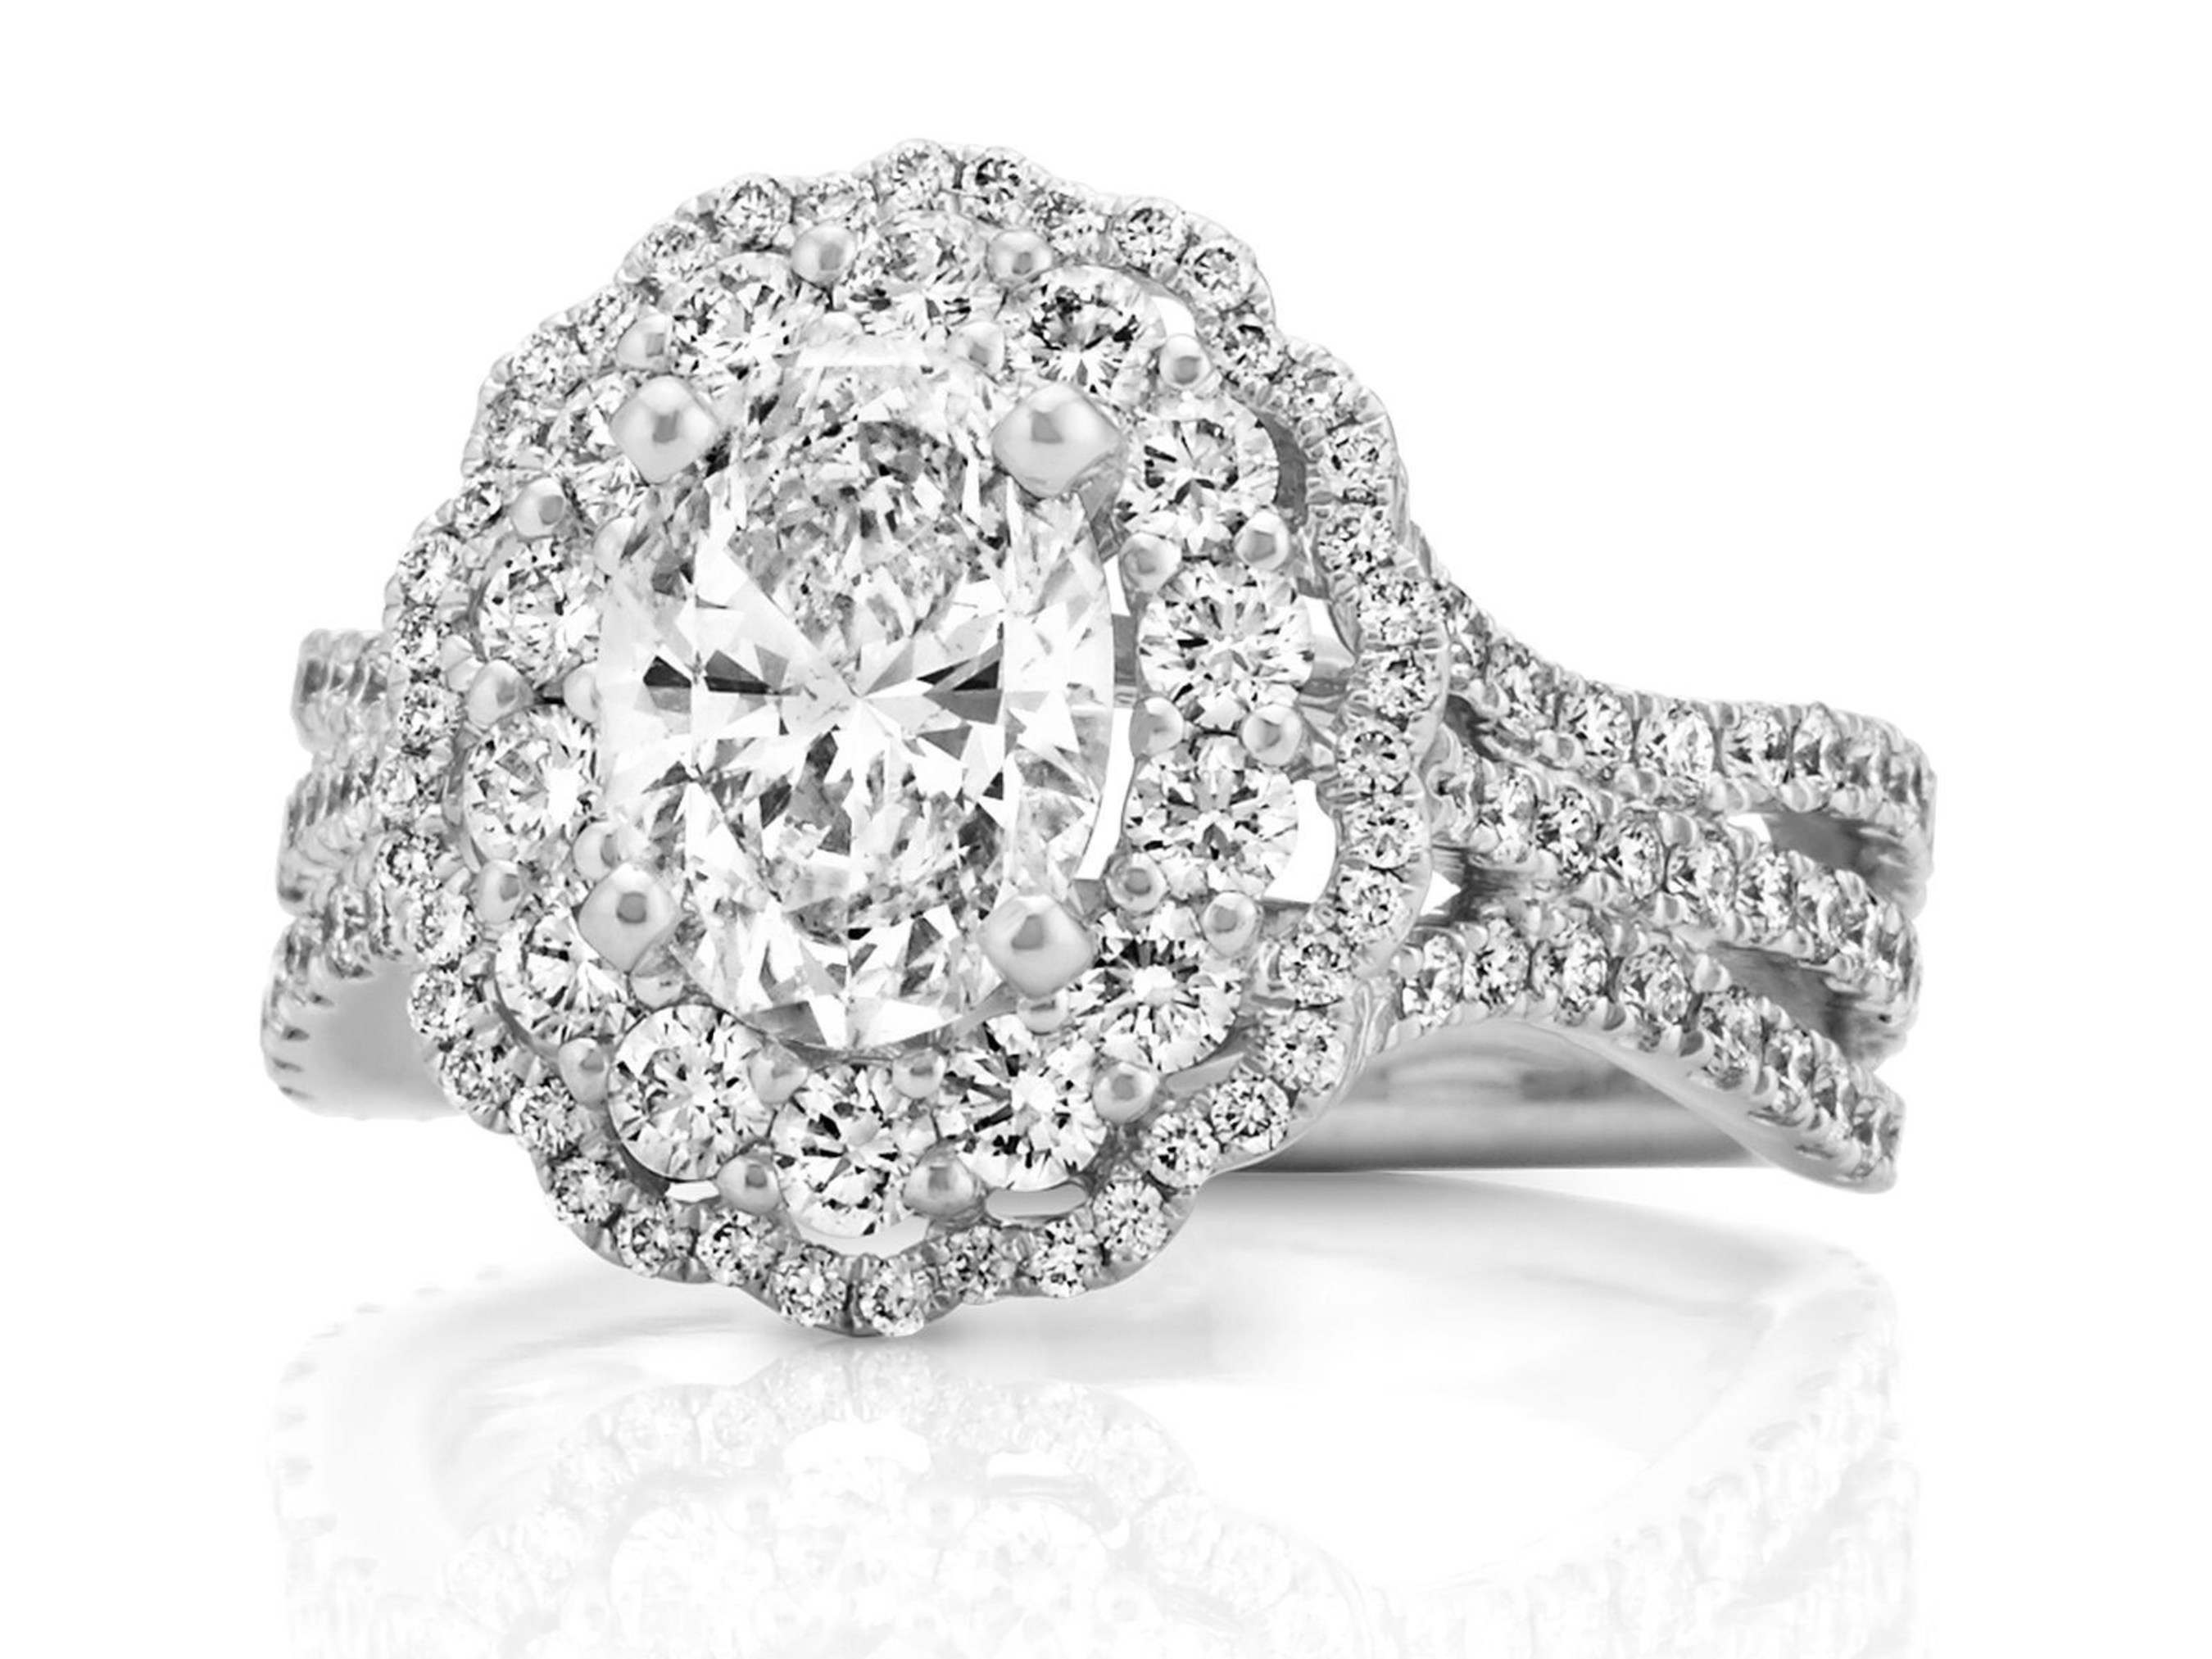 Shane Co. Double Halo Diamond Engagement Ring - Seven Engagement Rings for Christmas 2016